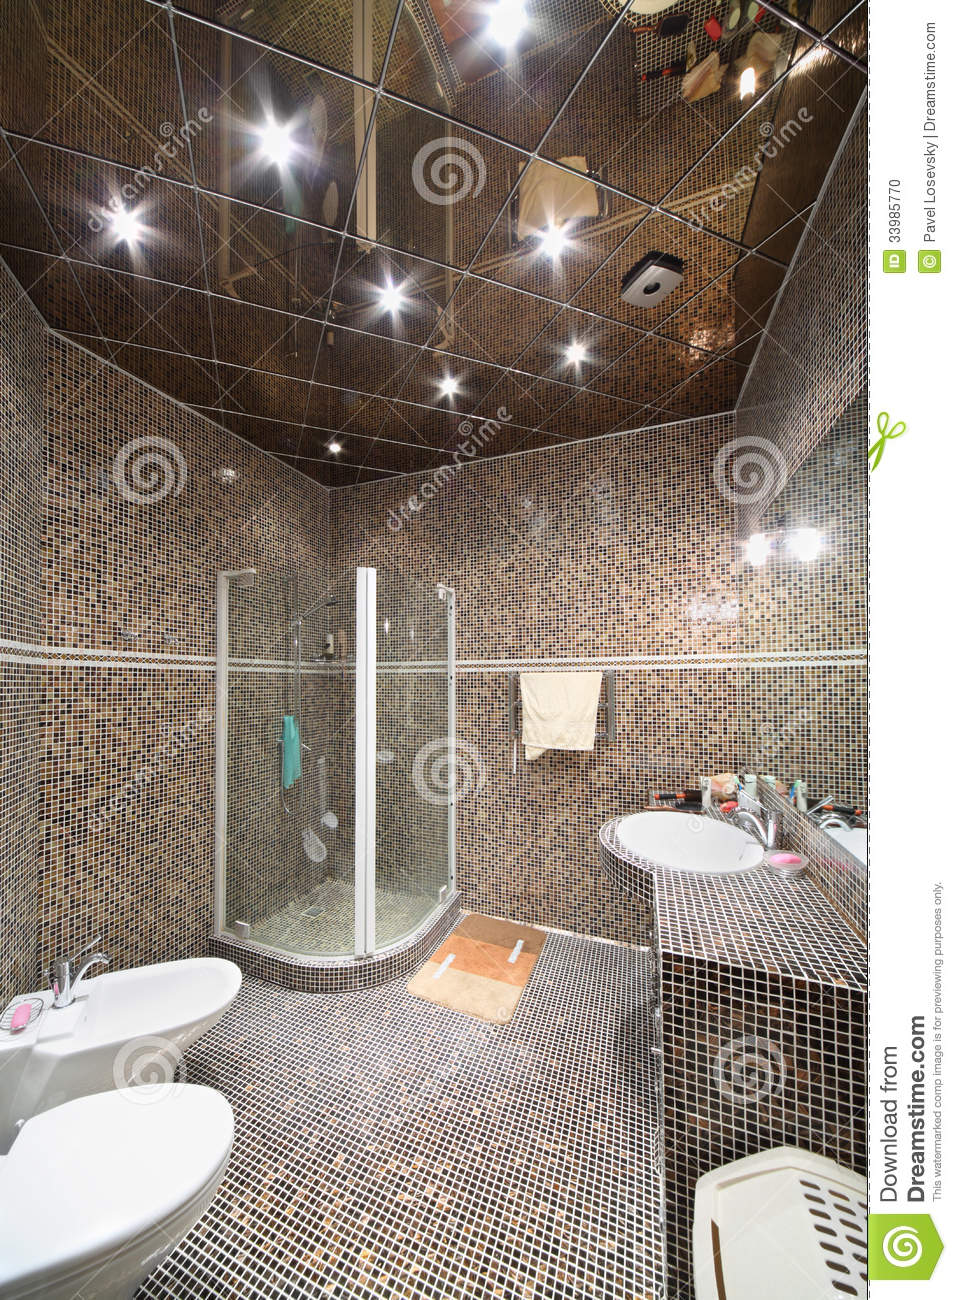 salle de bains avec la carlingue la toilette et le bidet de douche photo stock image 33985770. Black Bedroom Furniture Sets. Home Design Ideas